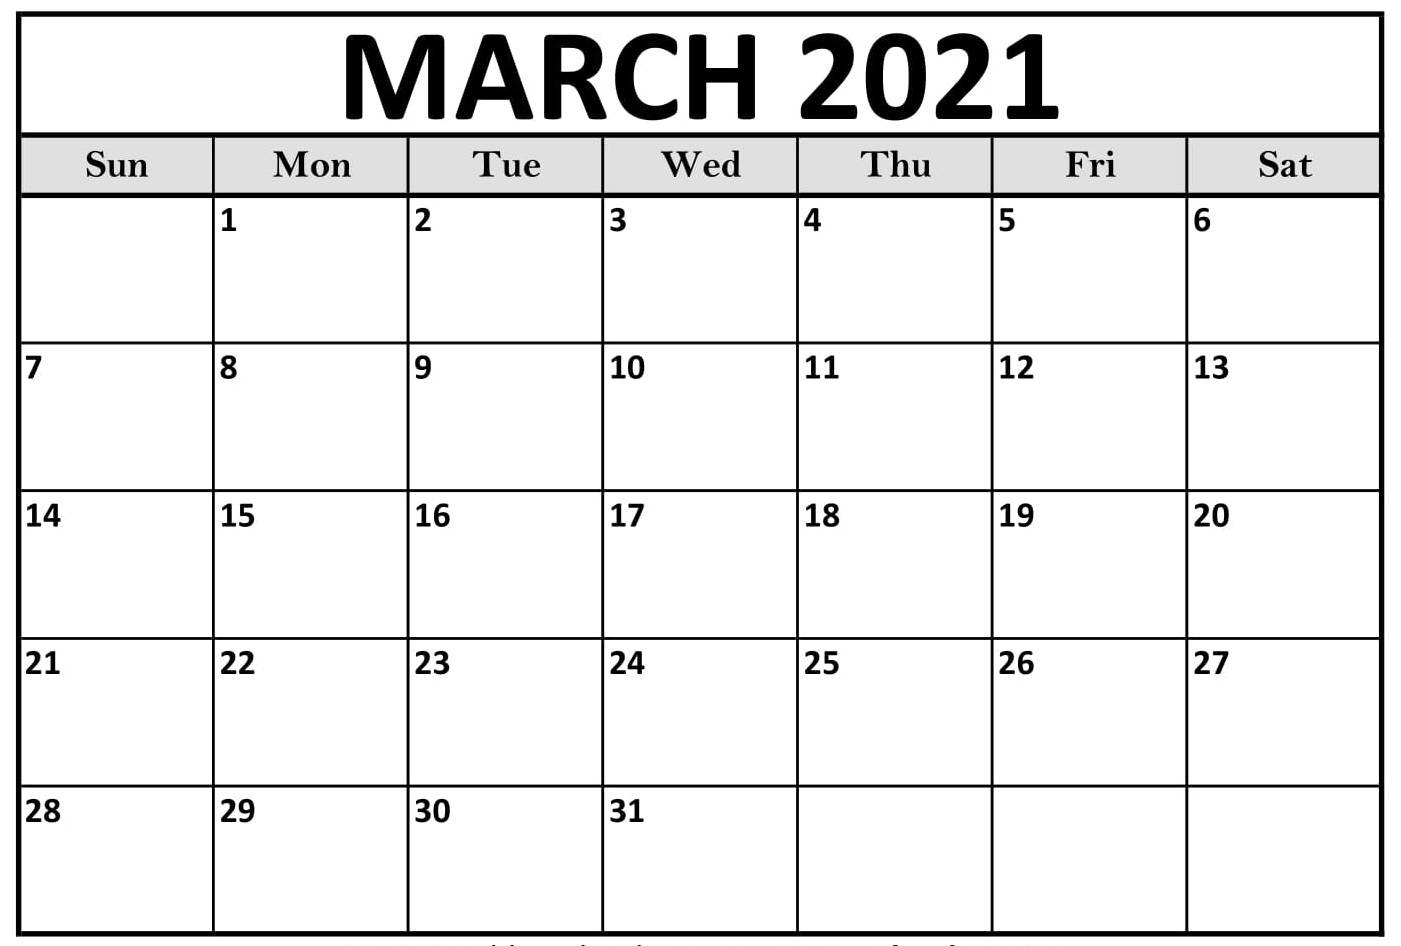 March 2021 Calendar Australia Holidays Template For Free